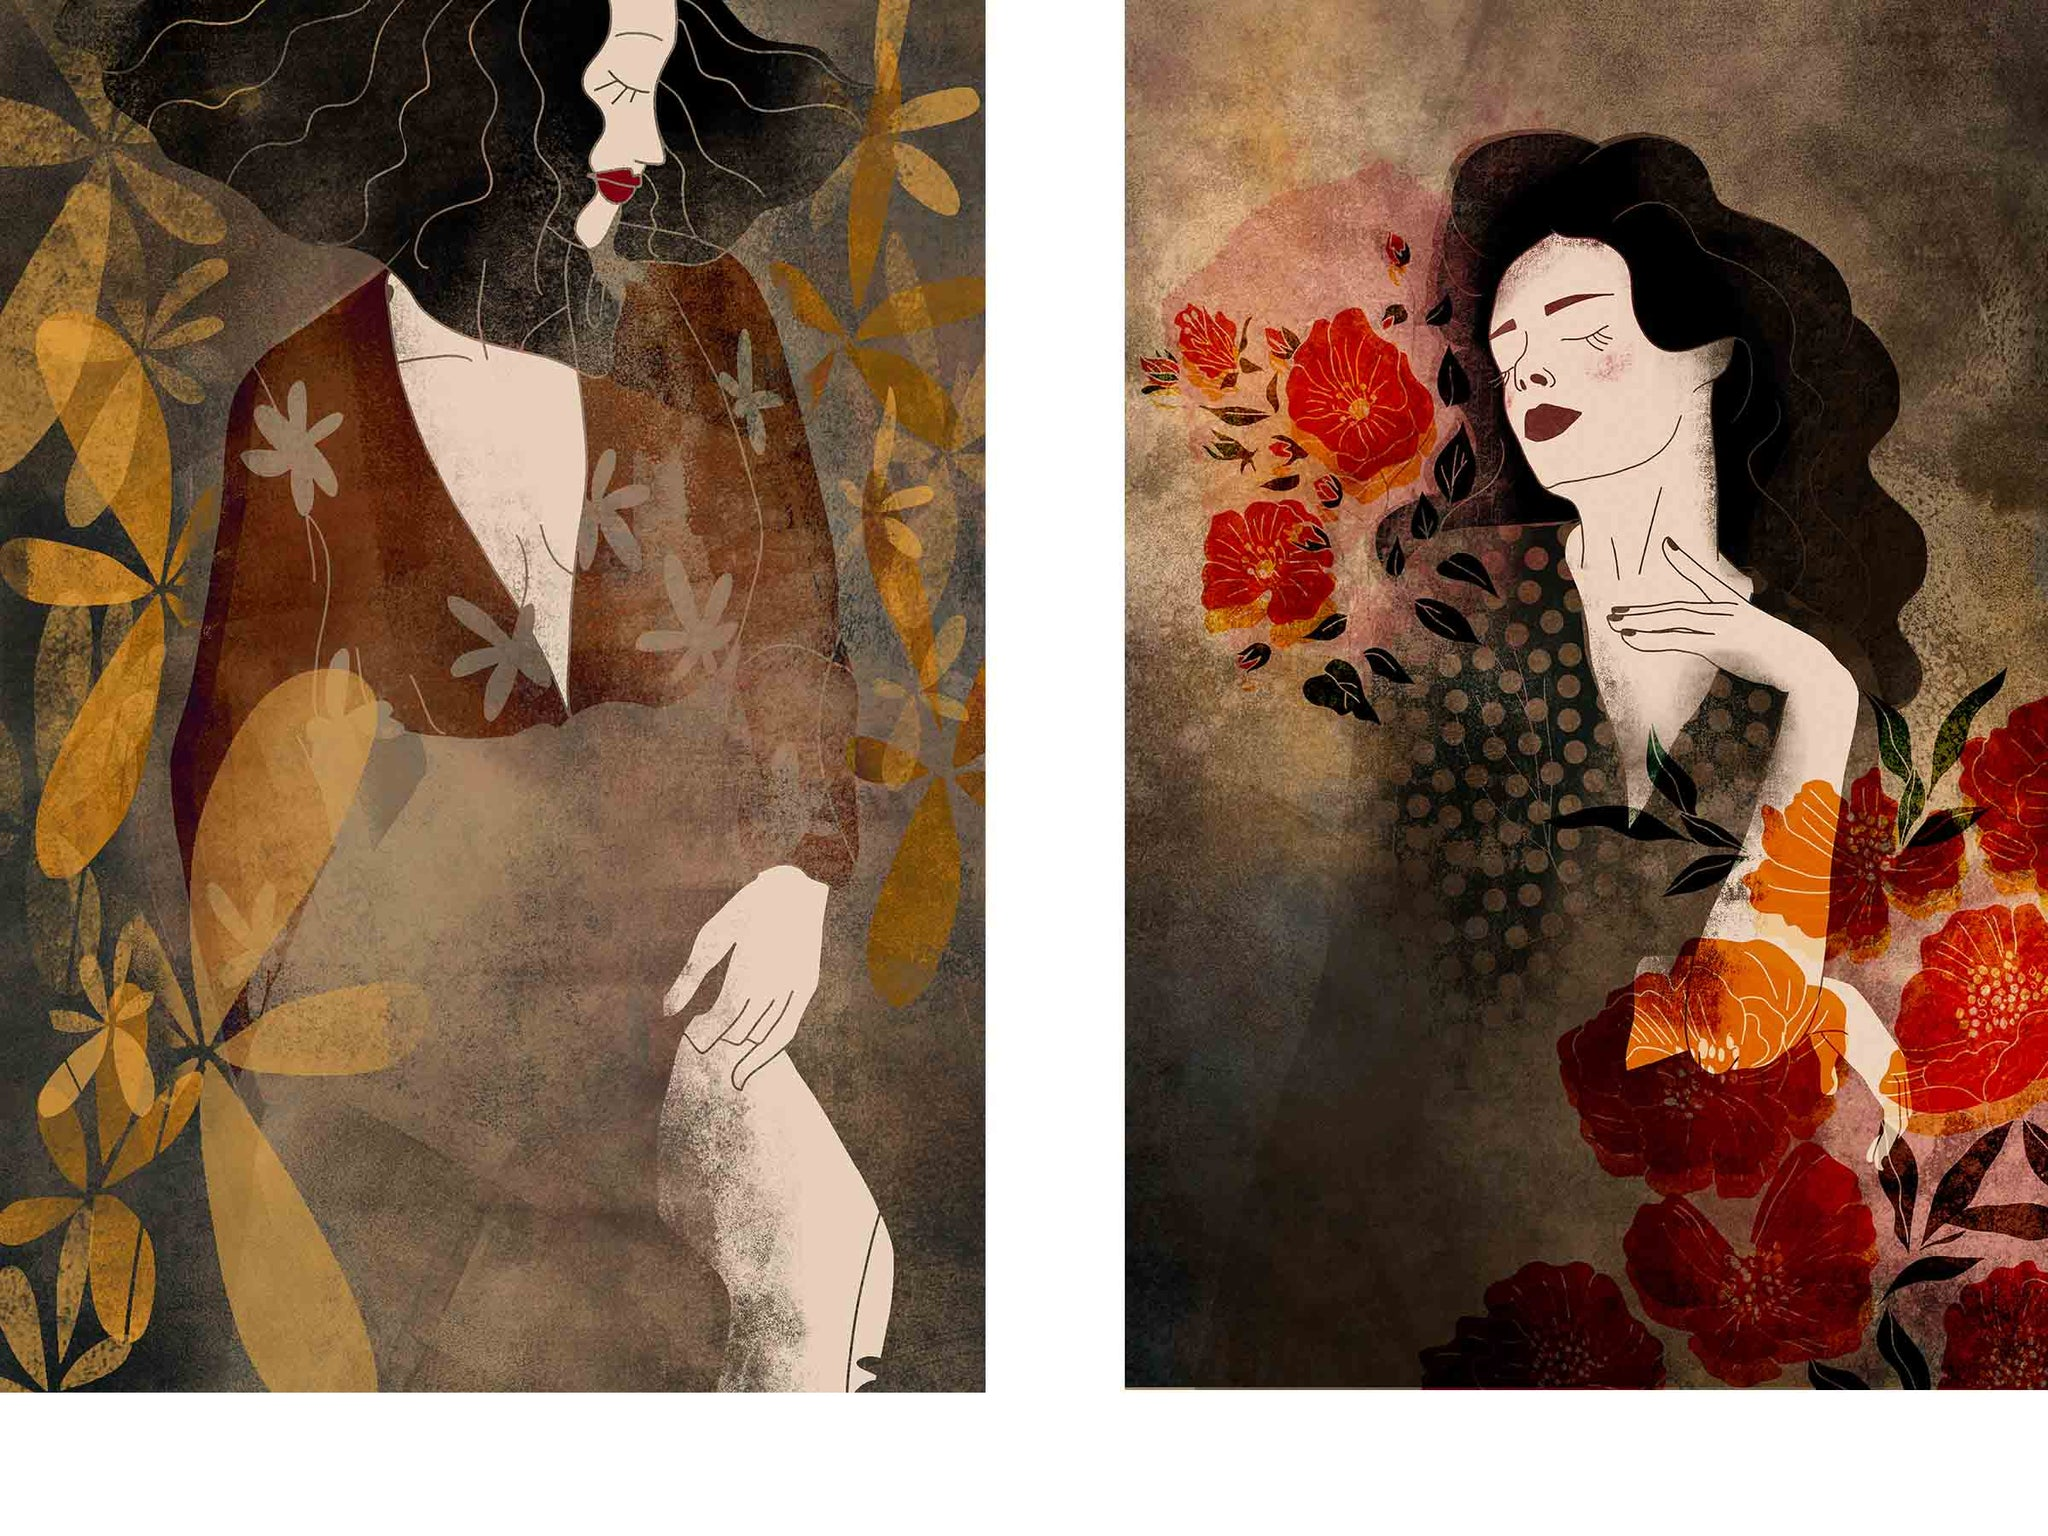 two separate stylized illustrated female portraits, both have eyes closed, both are beautiful and peaceful, both surrounded with flowers